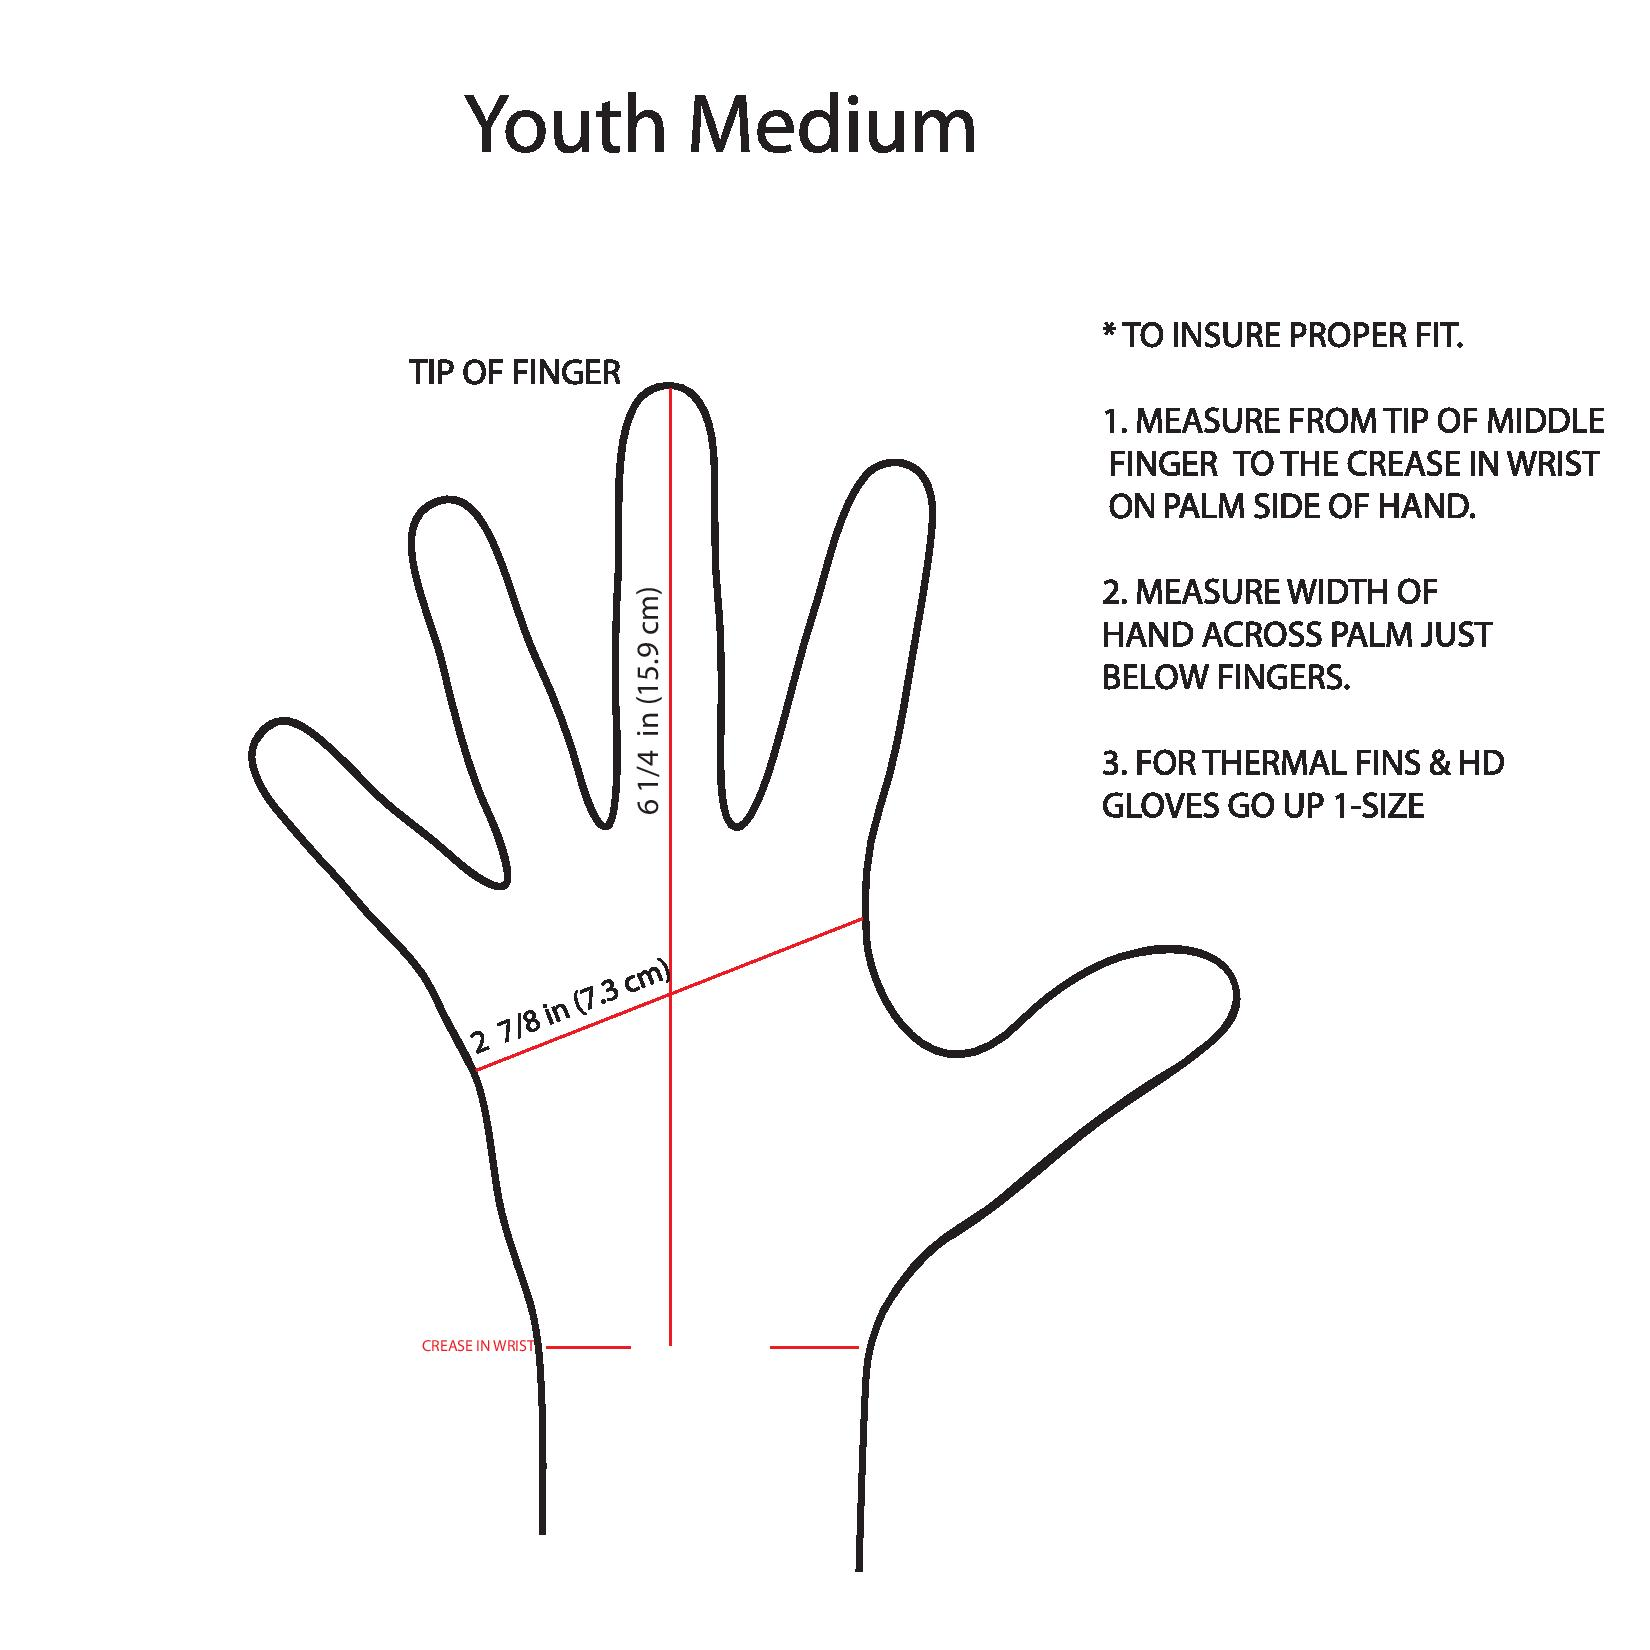 youth-med-page-001-2-.jpg